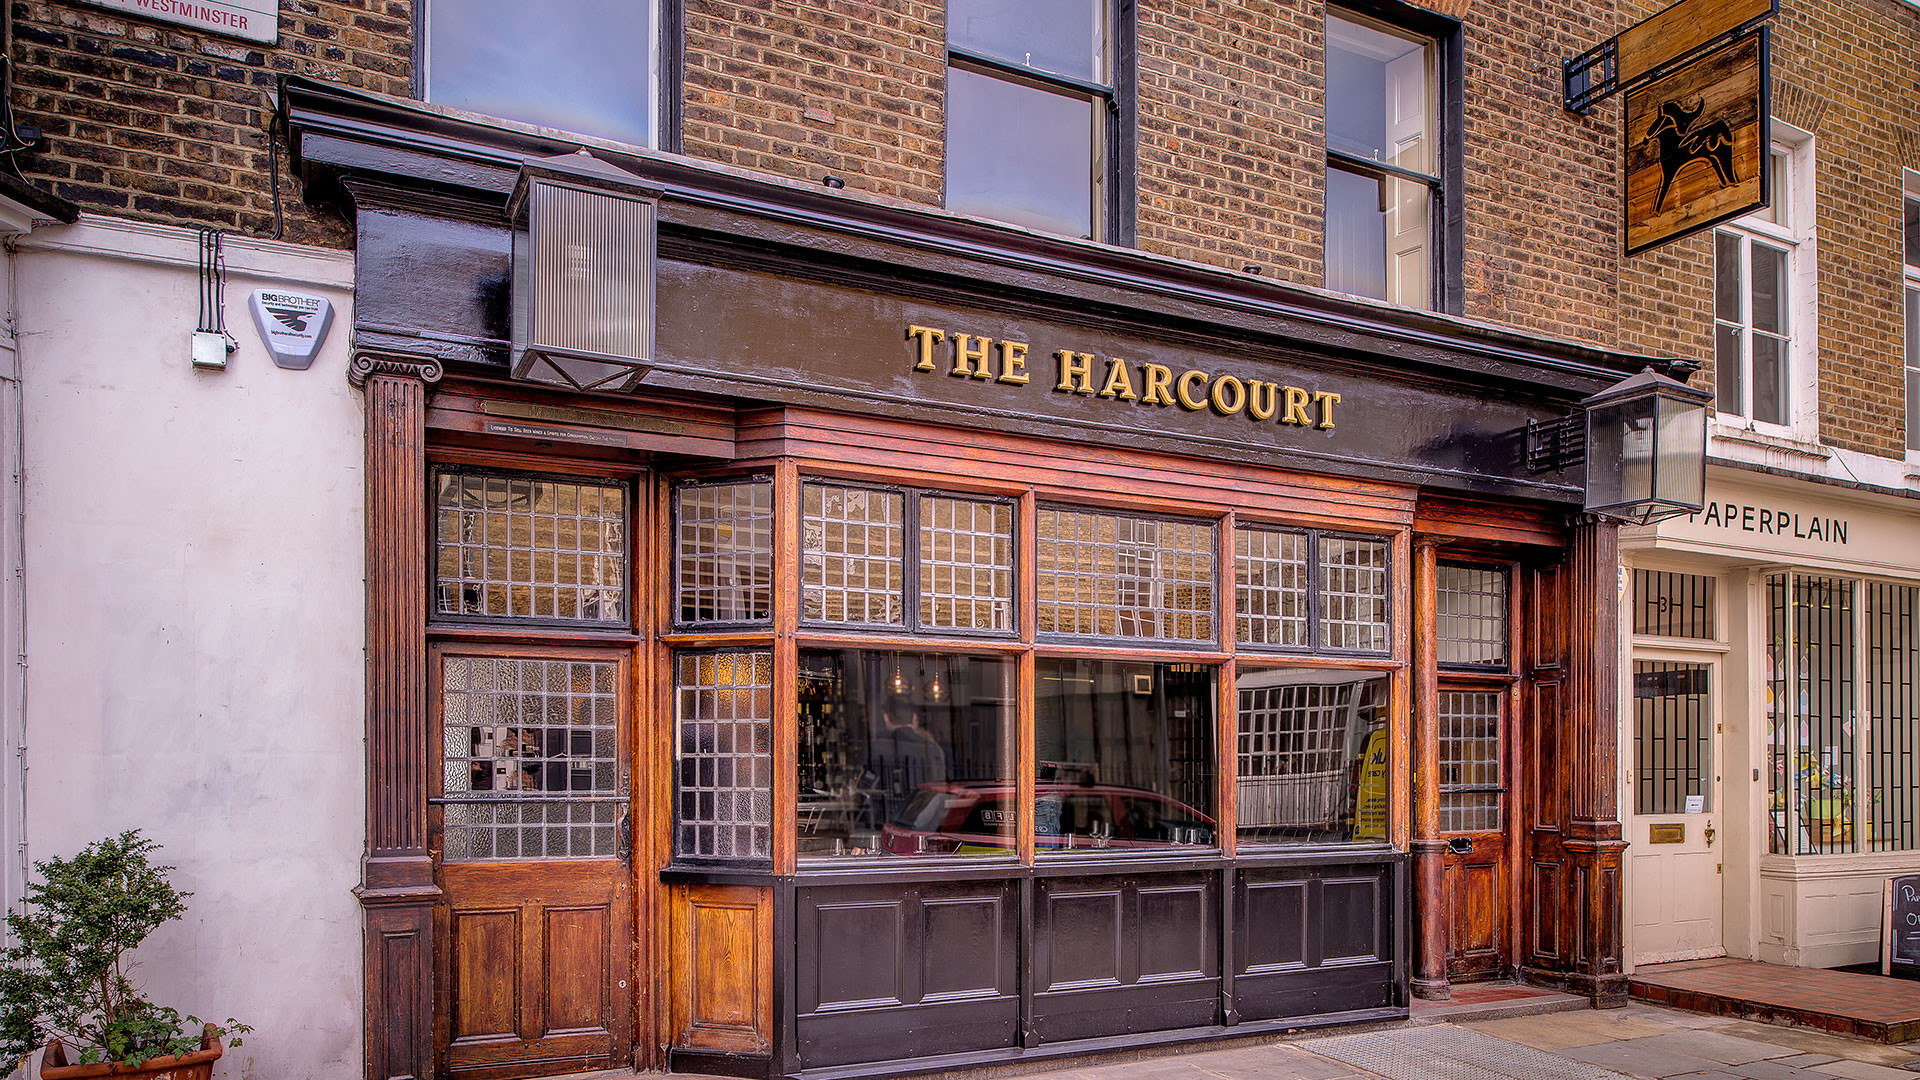 The Harcourt is housed inside a former pub